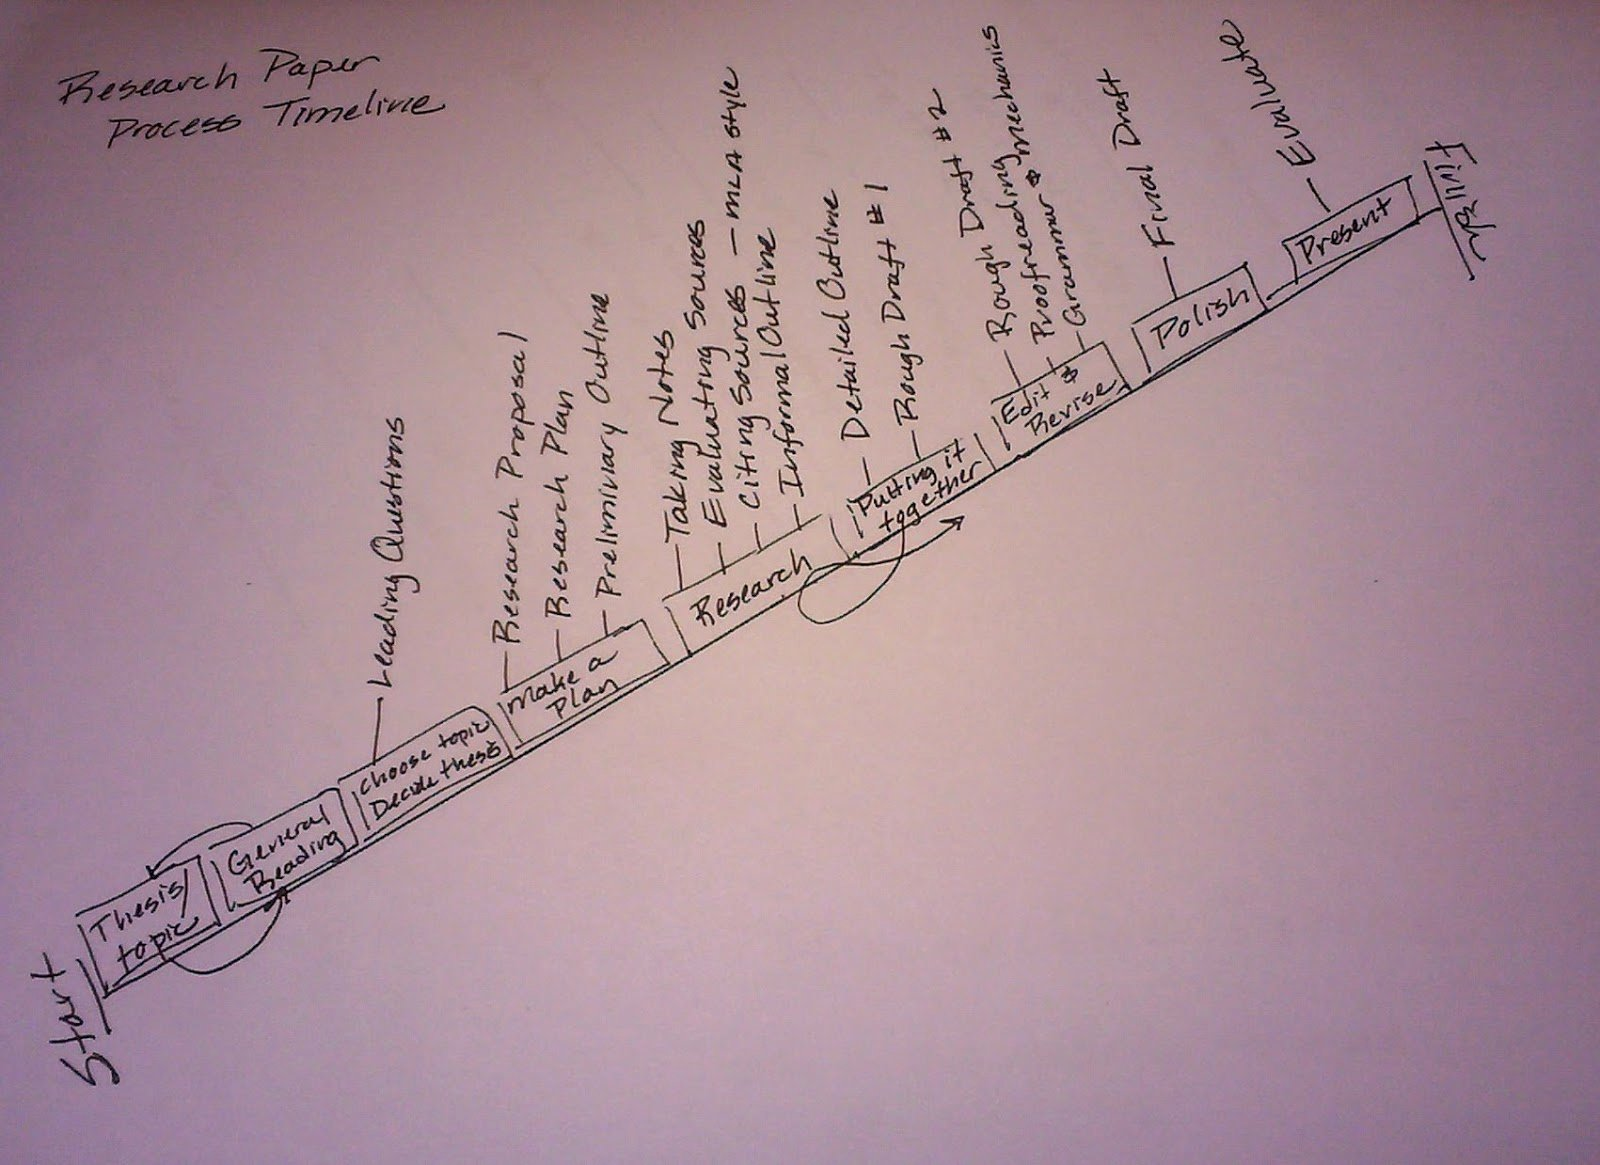 Timeline for Research Paper Elegant Writing 3 Research & Writing Research Paper Process Timeline